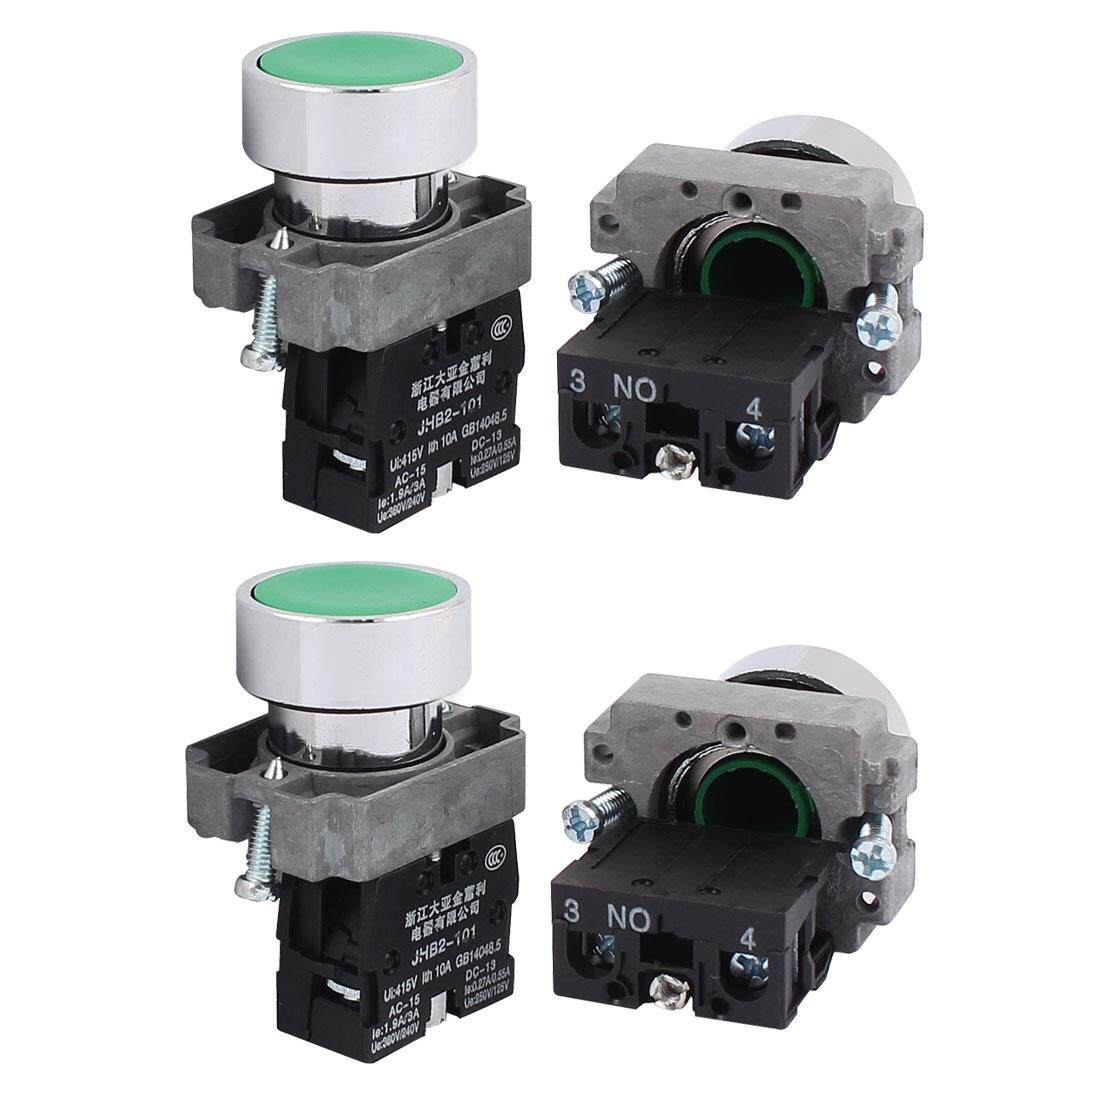 Features 12v Dc Led Light Illuminated Green Round Momentary Push Rocker Switch Spst X2 With Red Indicator Lamps Axa Ac 415v 10a No Button Contacted Block 4pcs